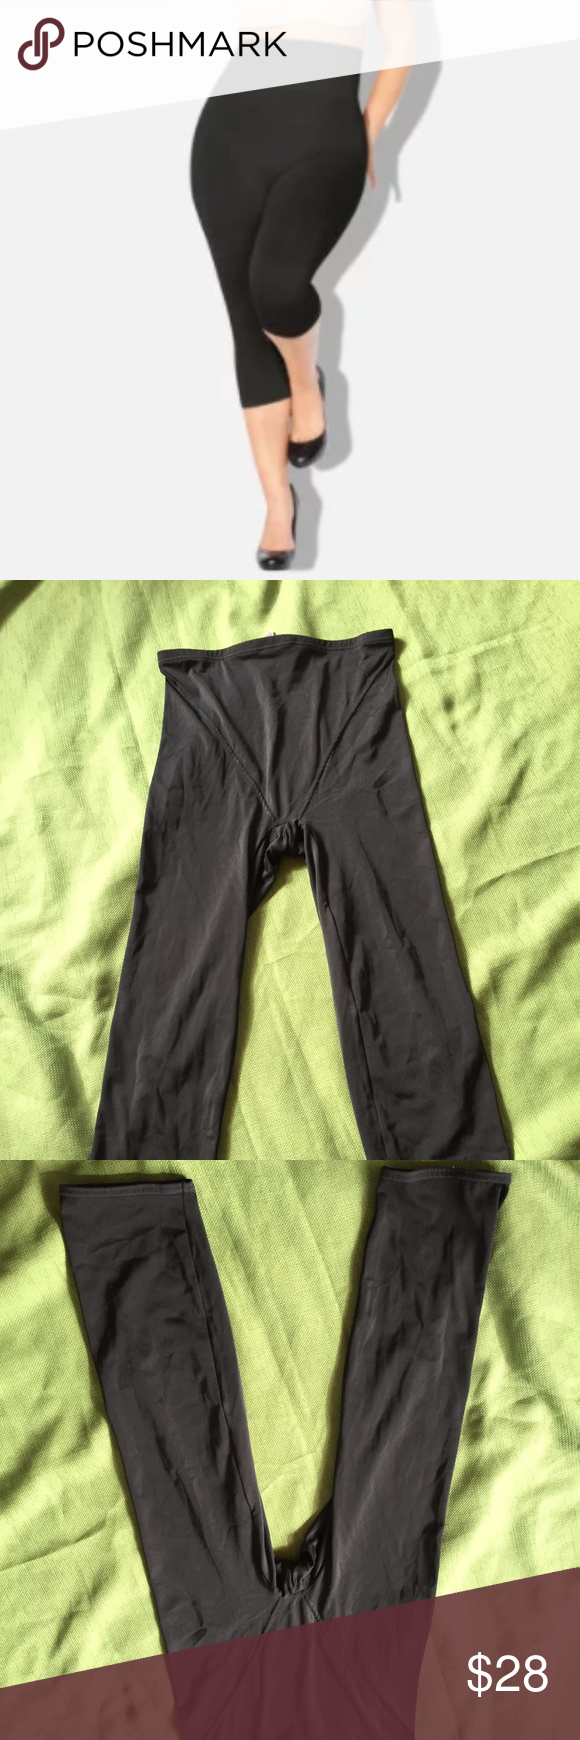 8282d50446b Flexees Shaping Capri Leggings Black 2XL Hi Waist Tummy control shaping  capris by Flexees. In good condition